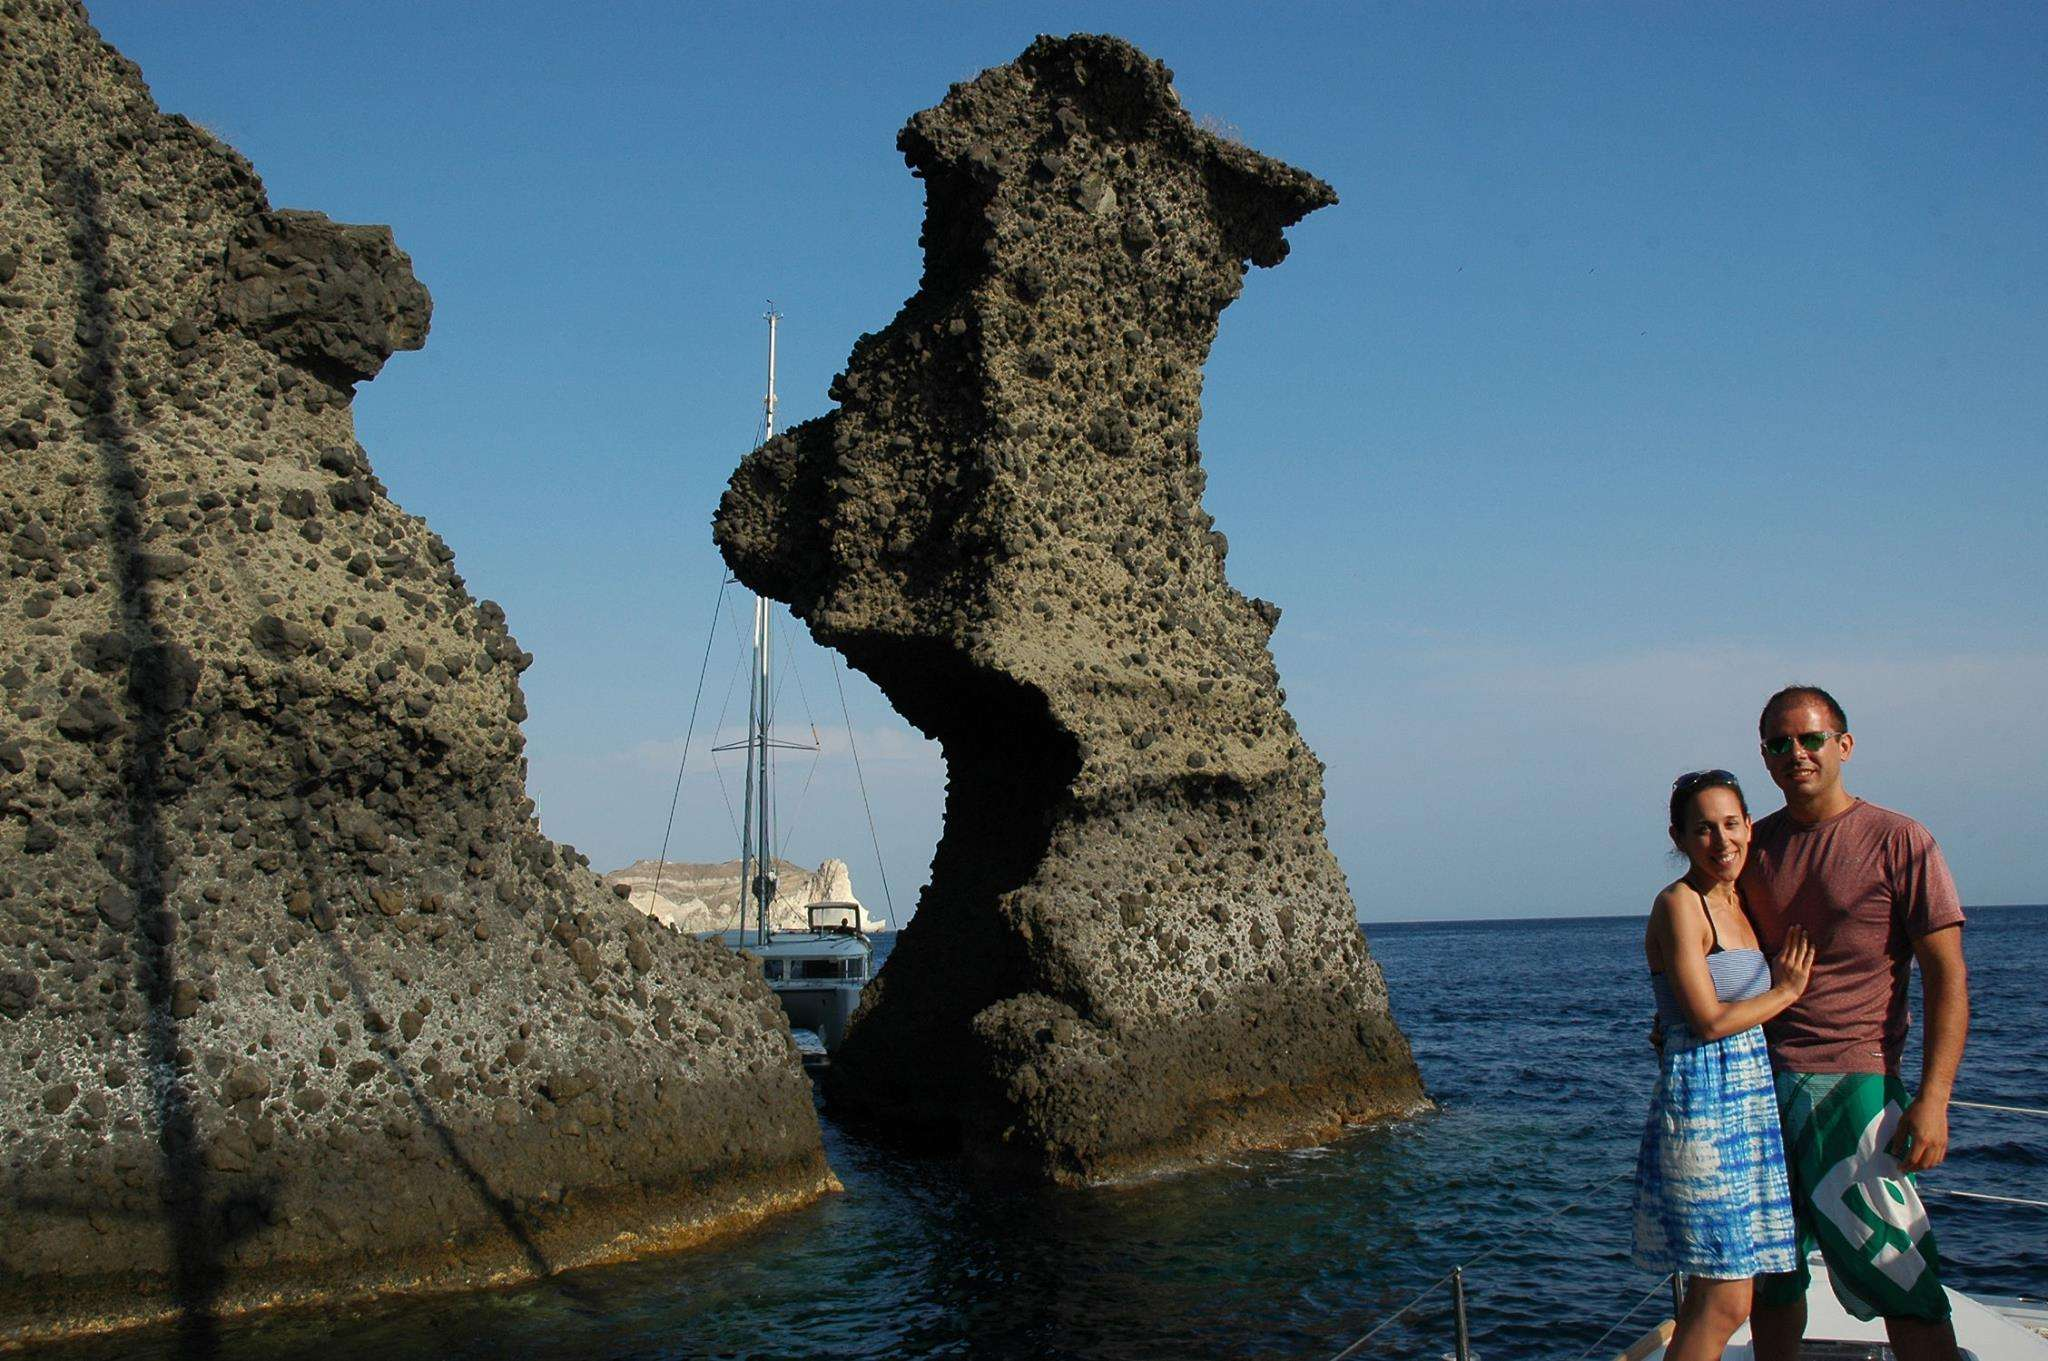 Some incredible rock formations made from the volcano on Santorini